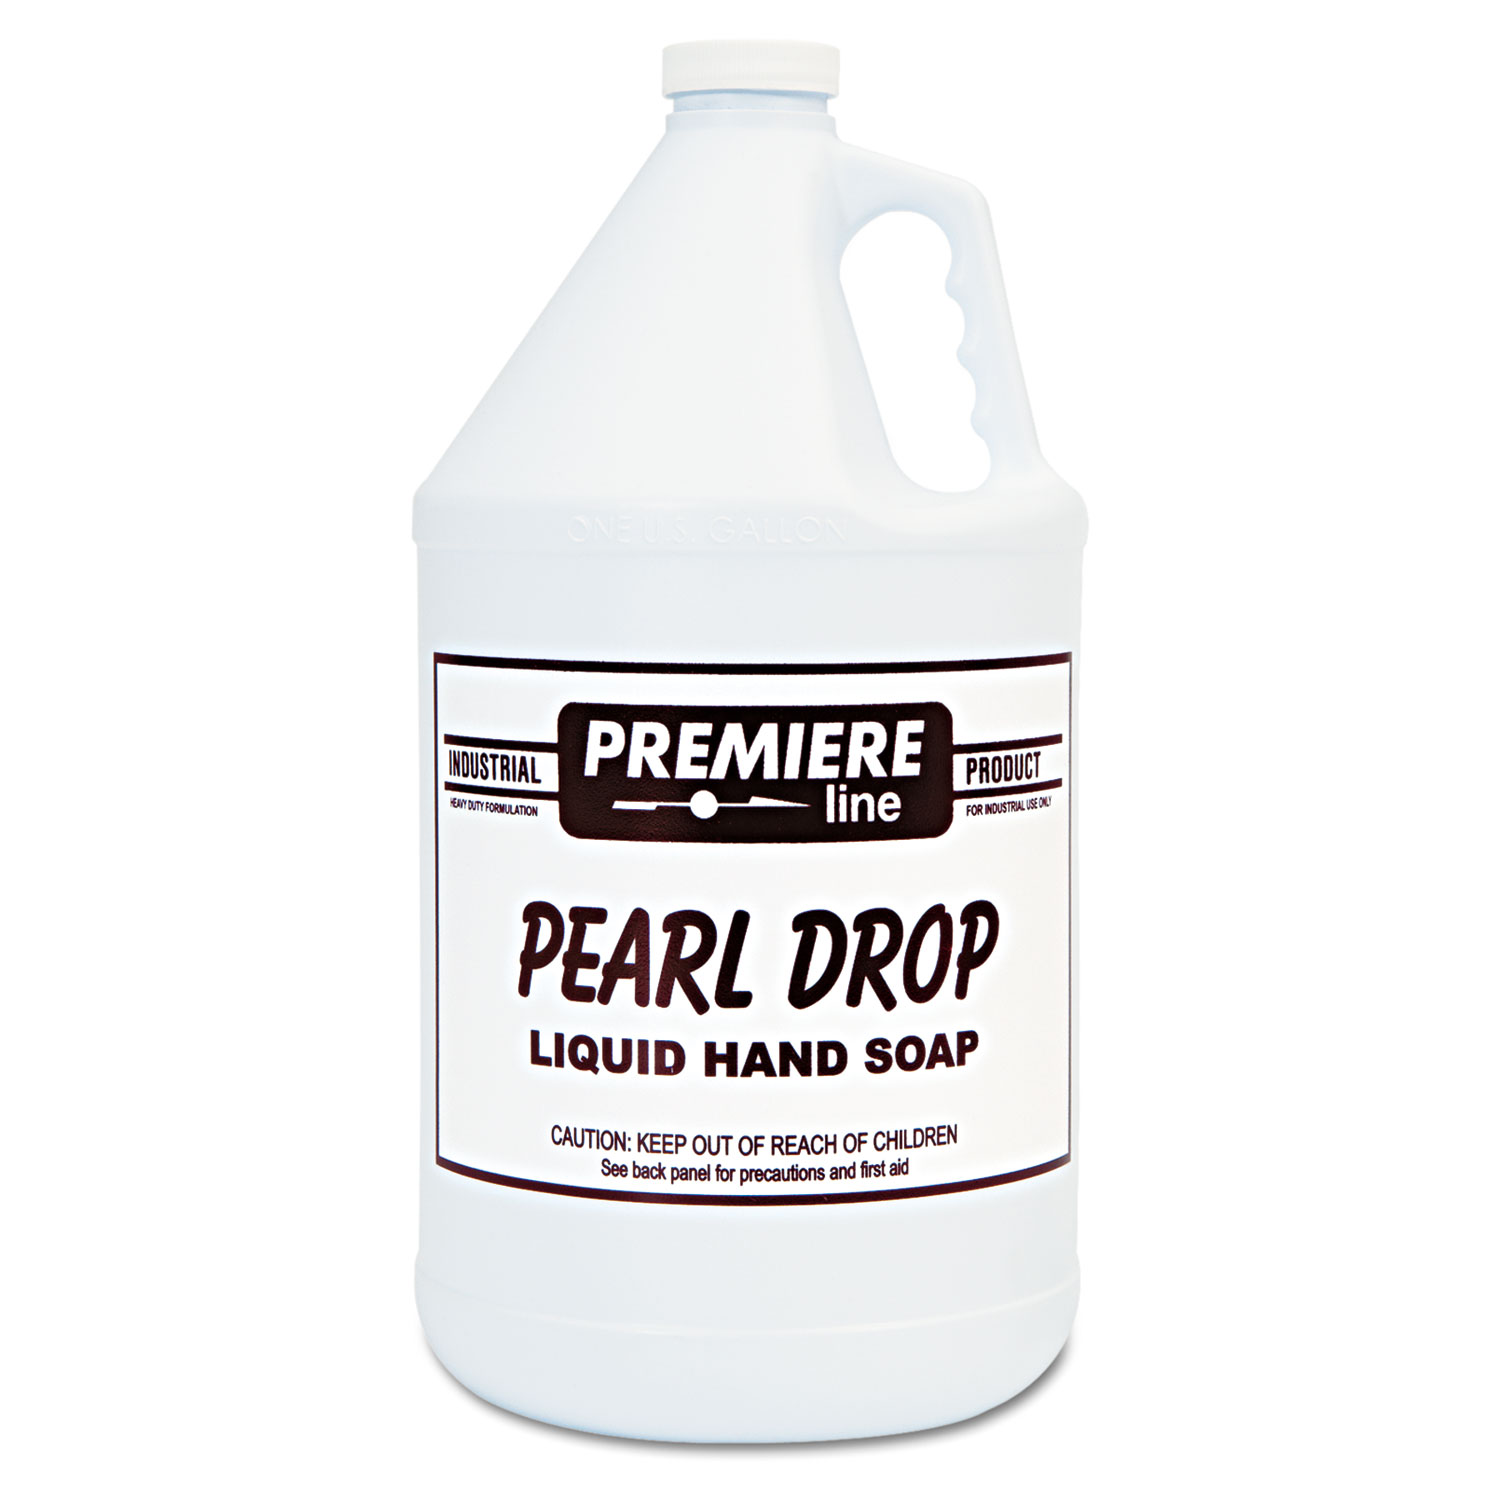 Pearl Drop Lotion Hand Soap, 1 Gallon Container